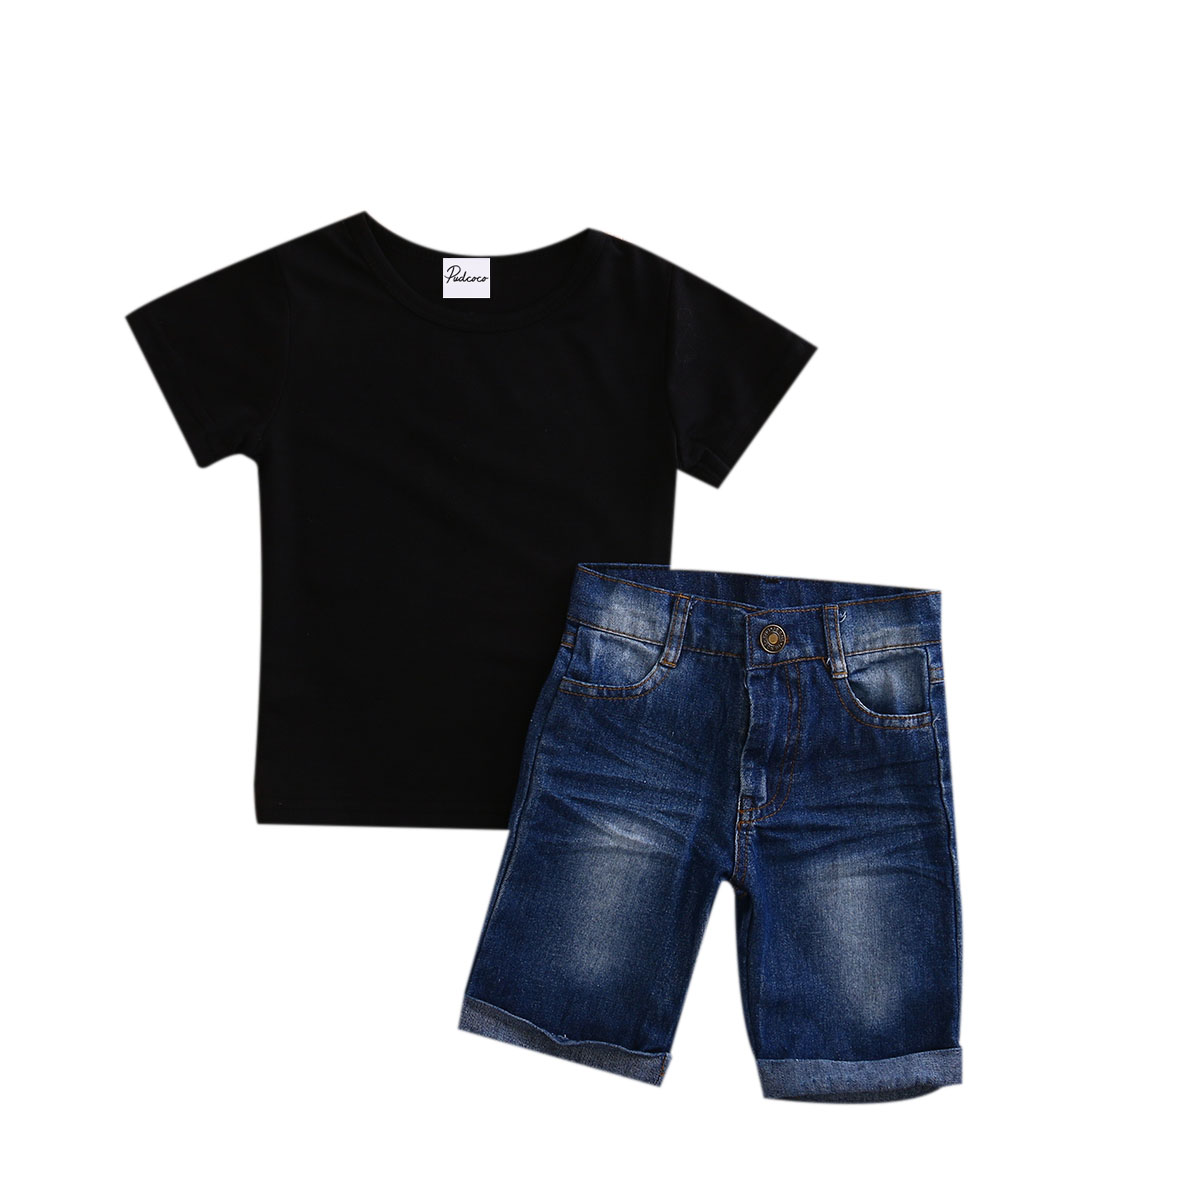 Black t shirt for toddler - 2pcs Toddler Baby Boys 2017 New Summer Short Sleeve Solid Black T Shirt Tops Short Jeans Set Kids Clothes Outfits